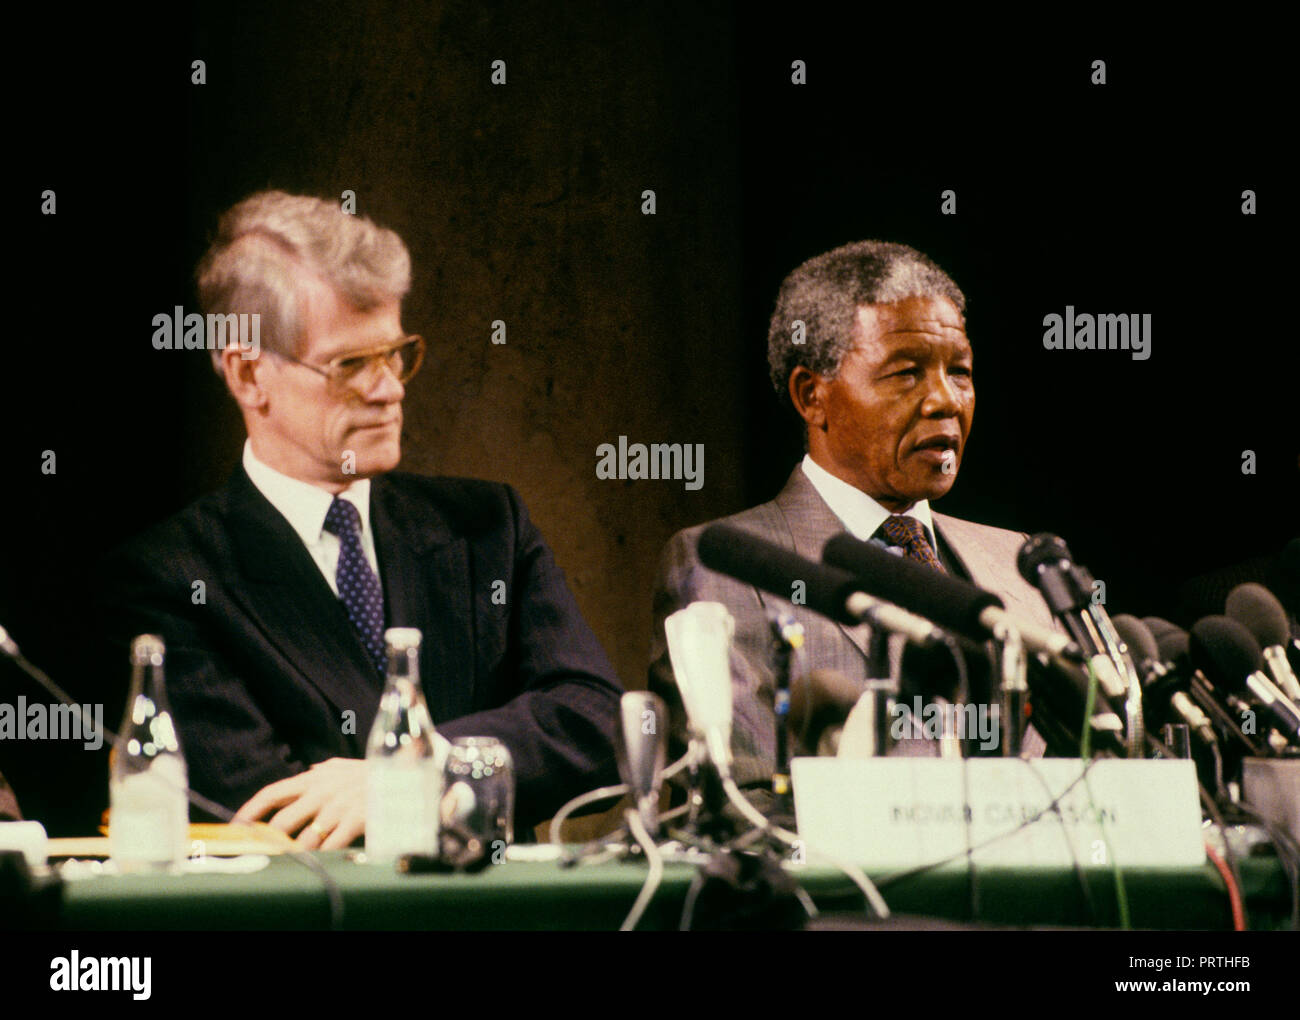 Nelson Mandela Anc And South Africa Leader In Stockholm For